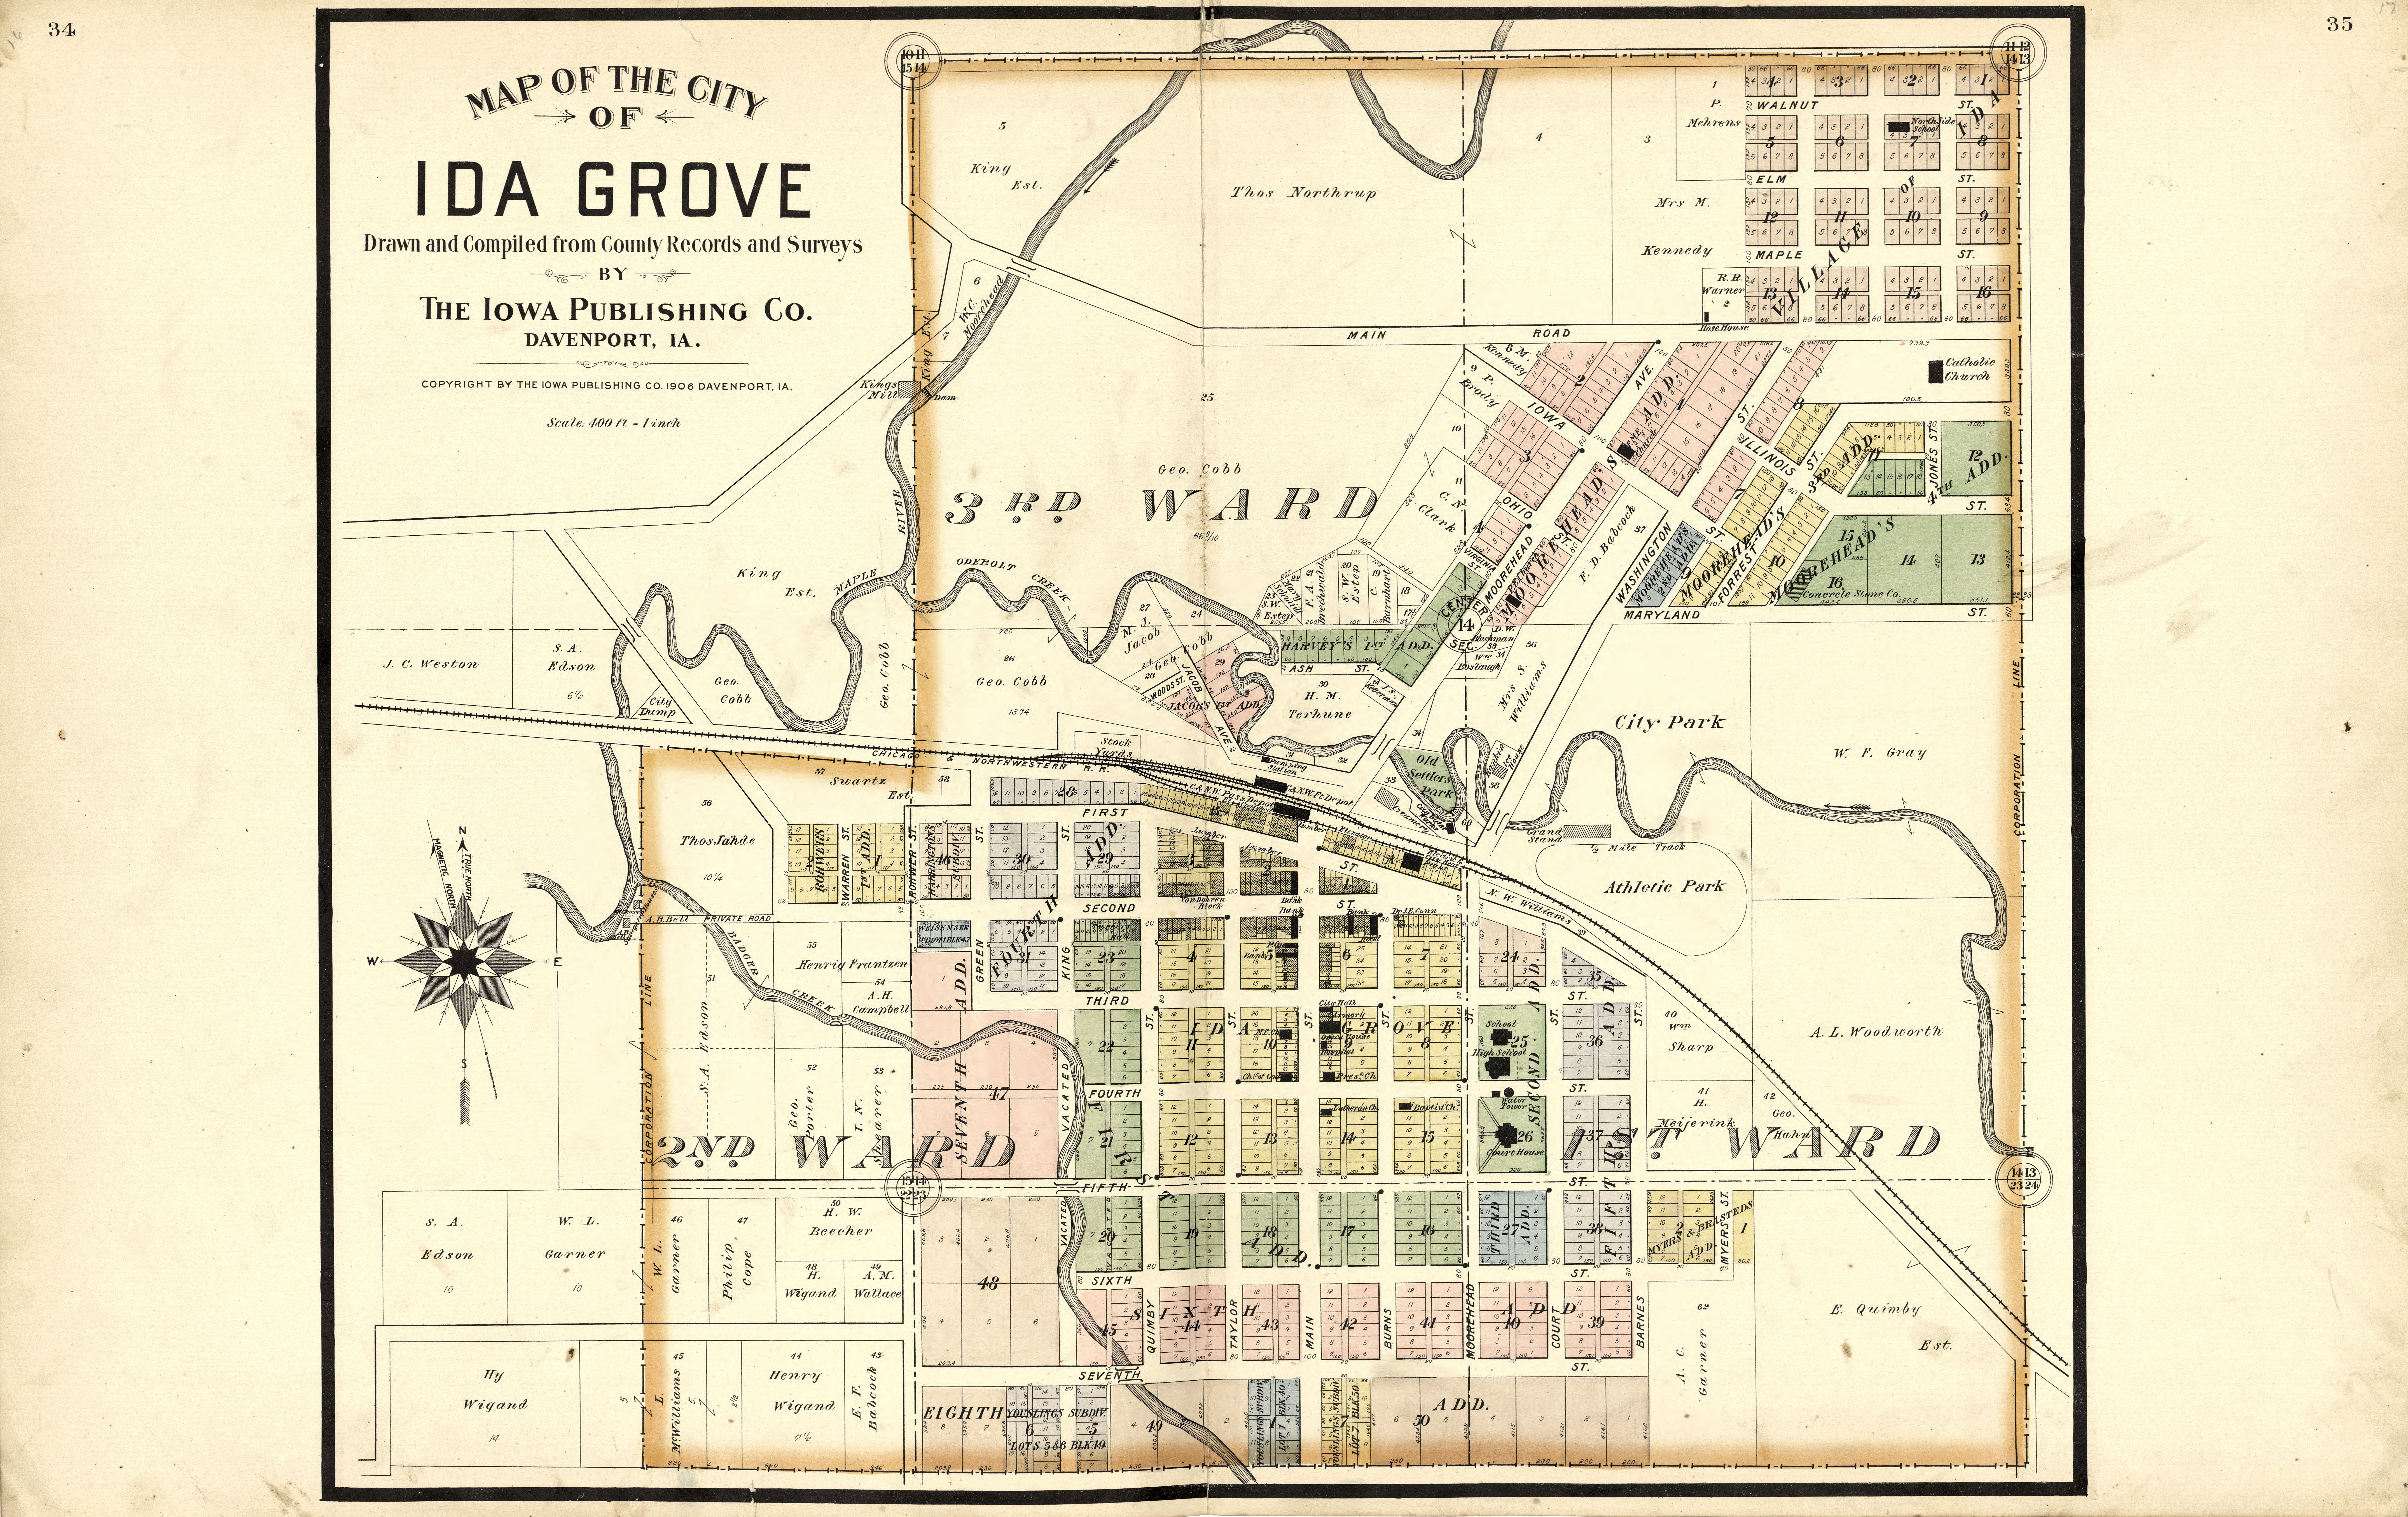 State Of Iowa Map With Cities.File Atlas Of Ida County Iowa Containing Maps Of Villages Cities